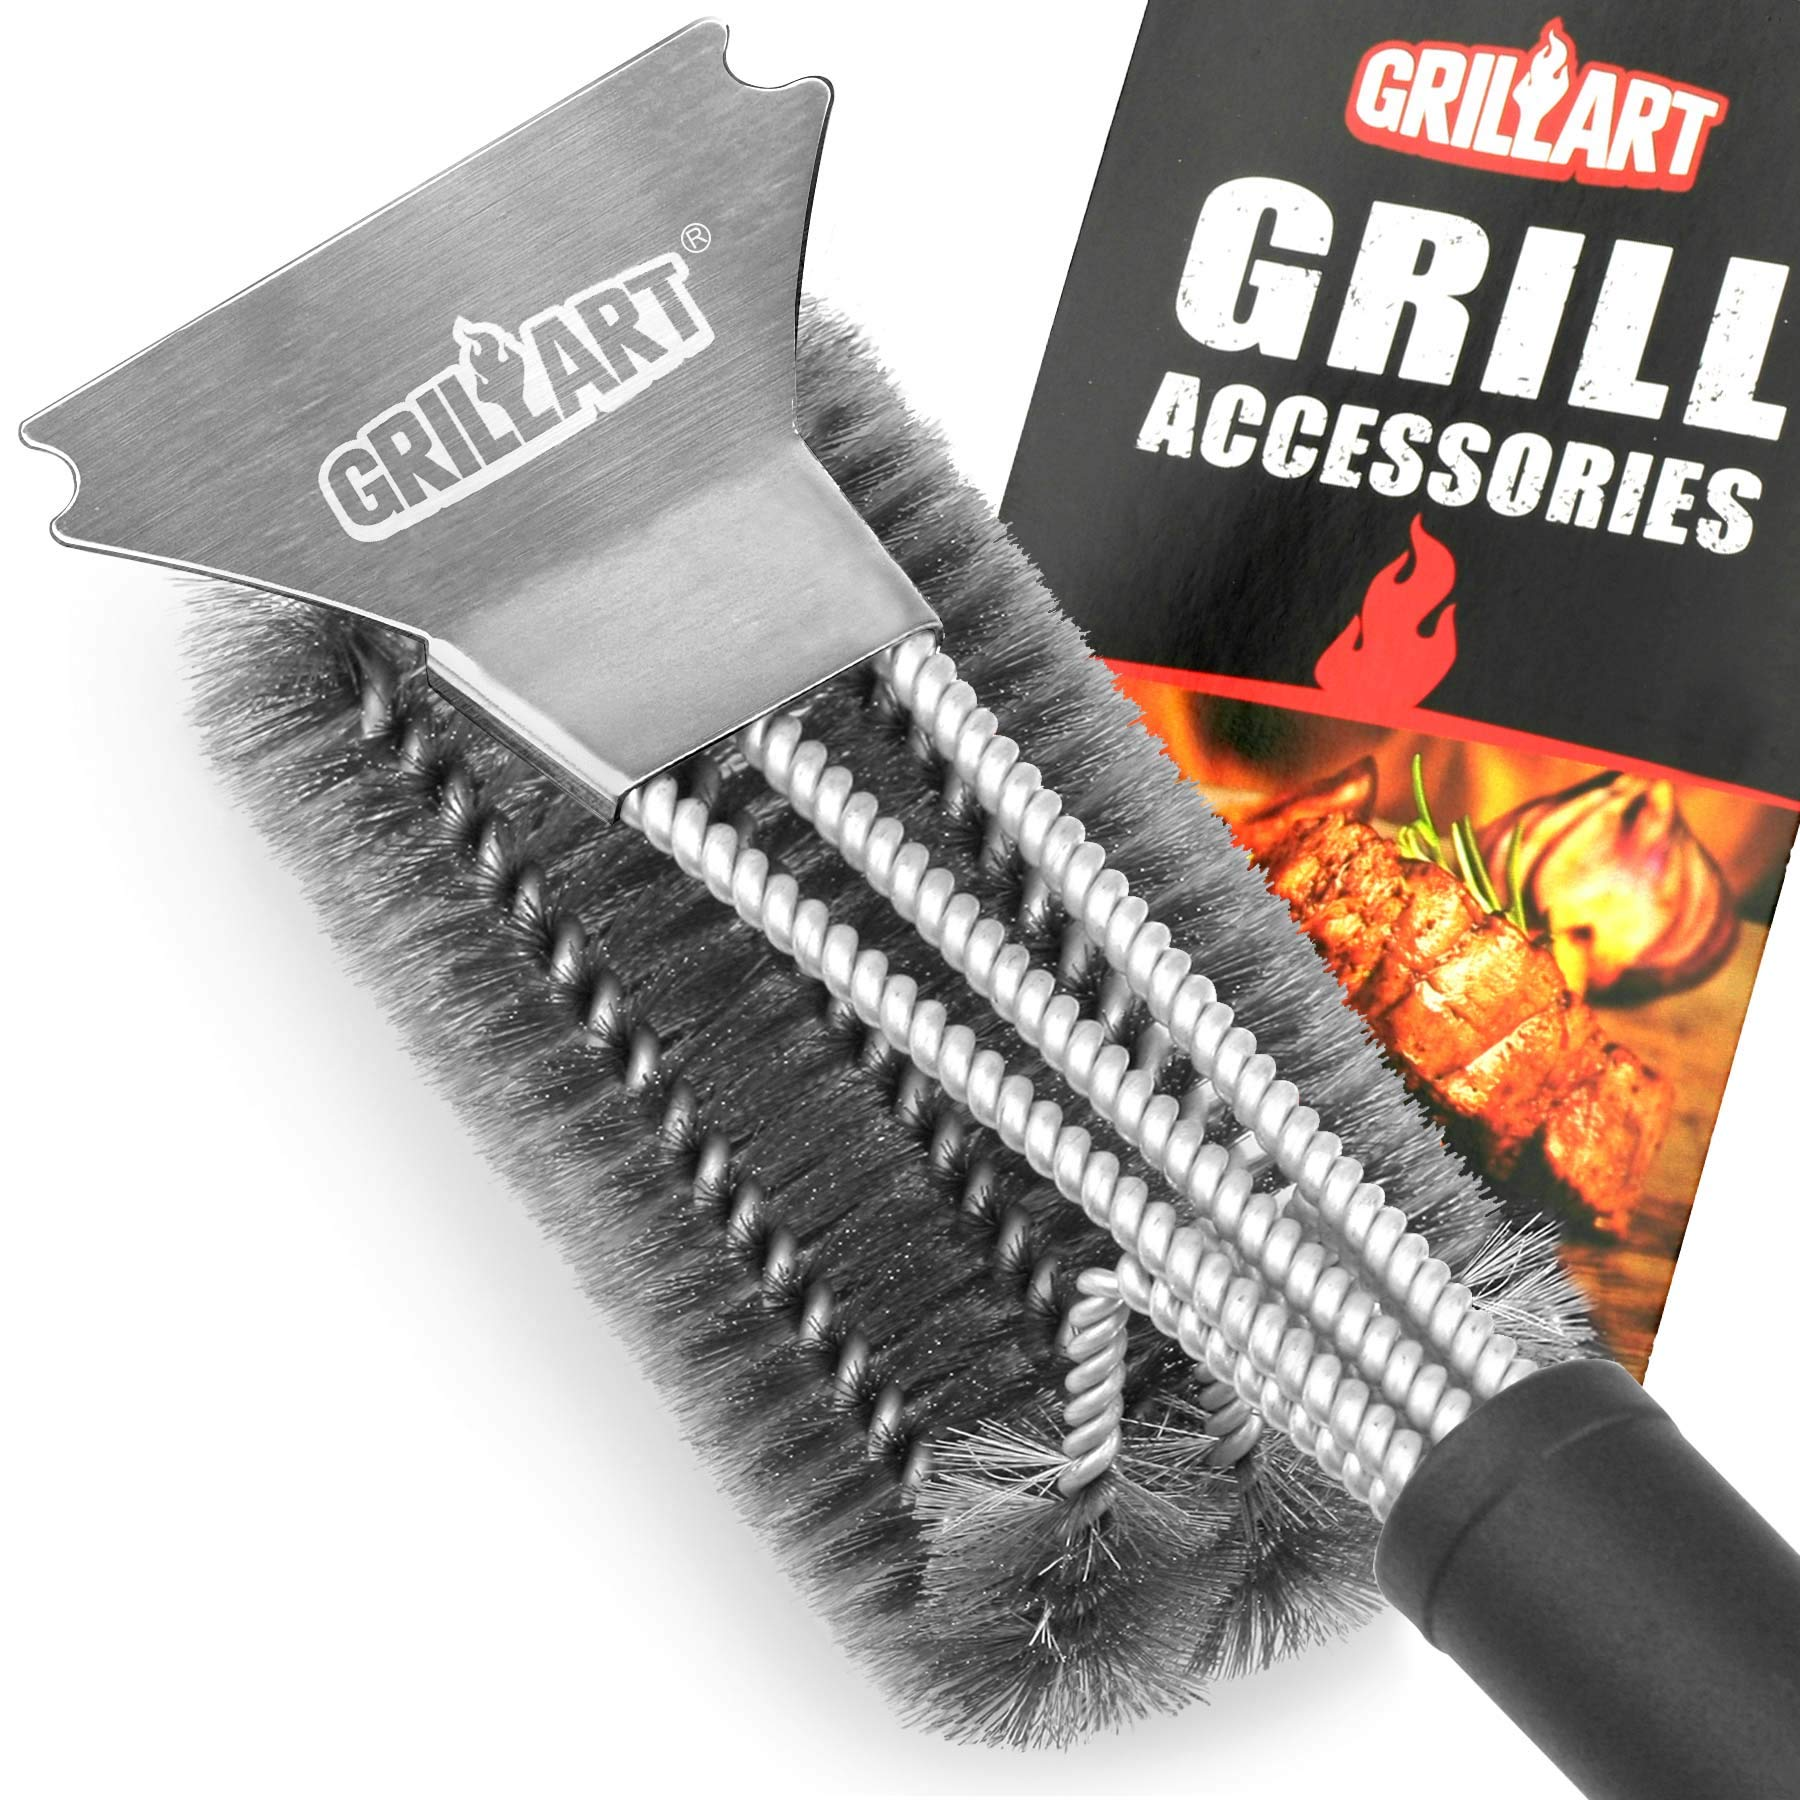 GRILLART Combination Grill Brush and Scraper by GRILLART